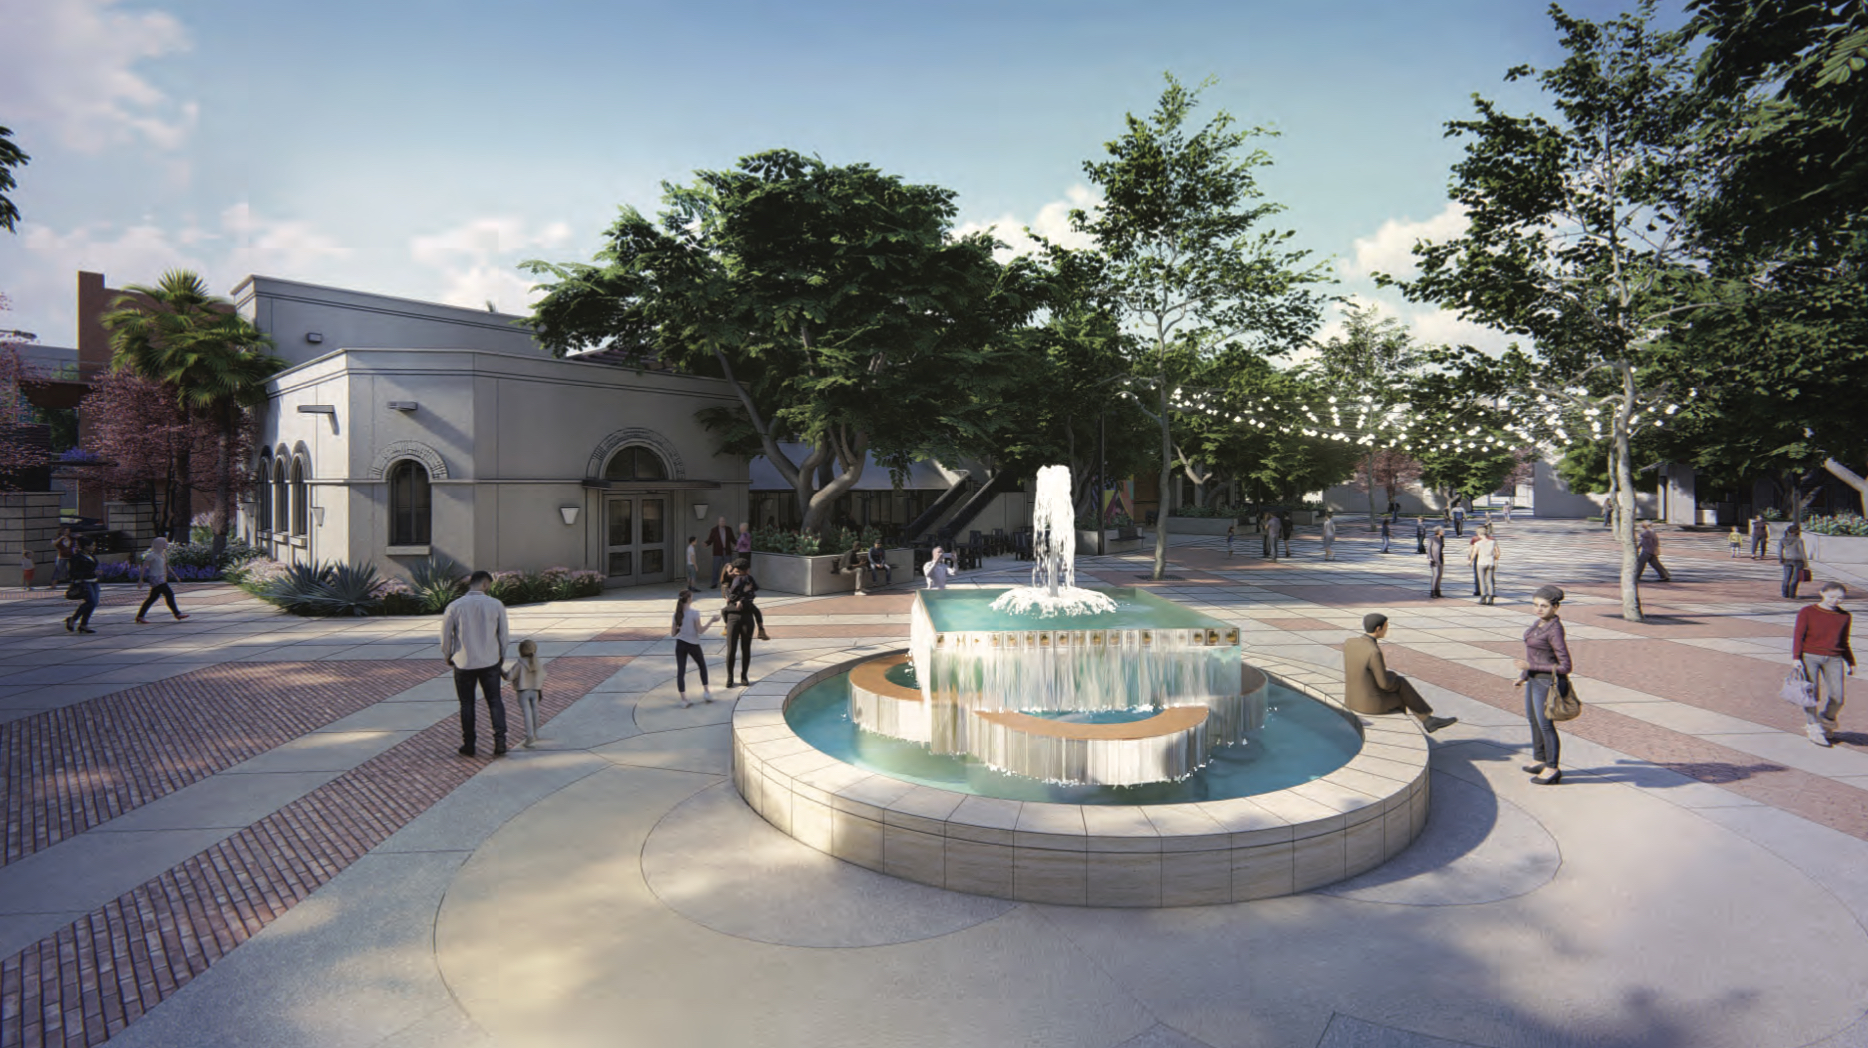 A conceptual rendering of the updated Maverick Plaza and new fountain.